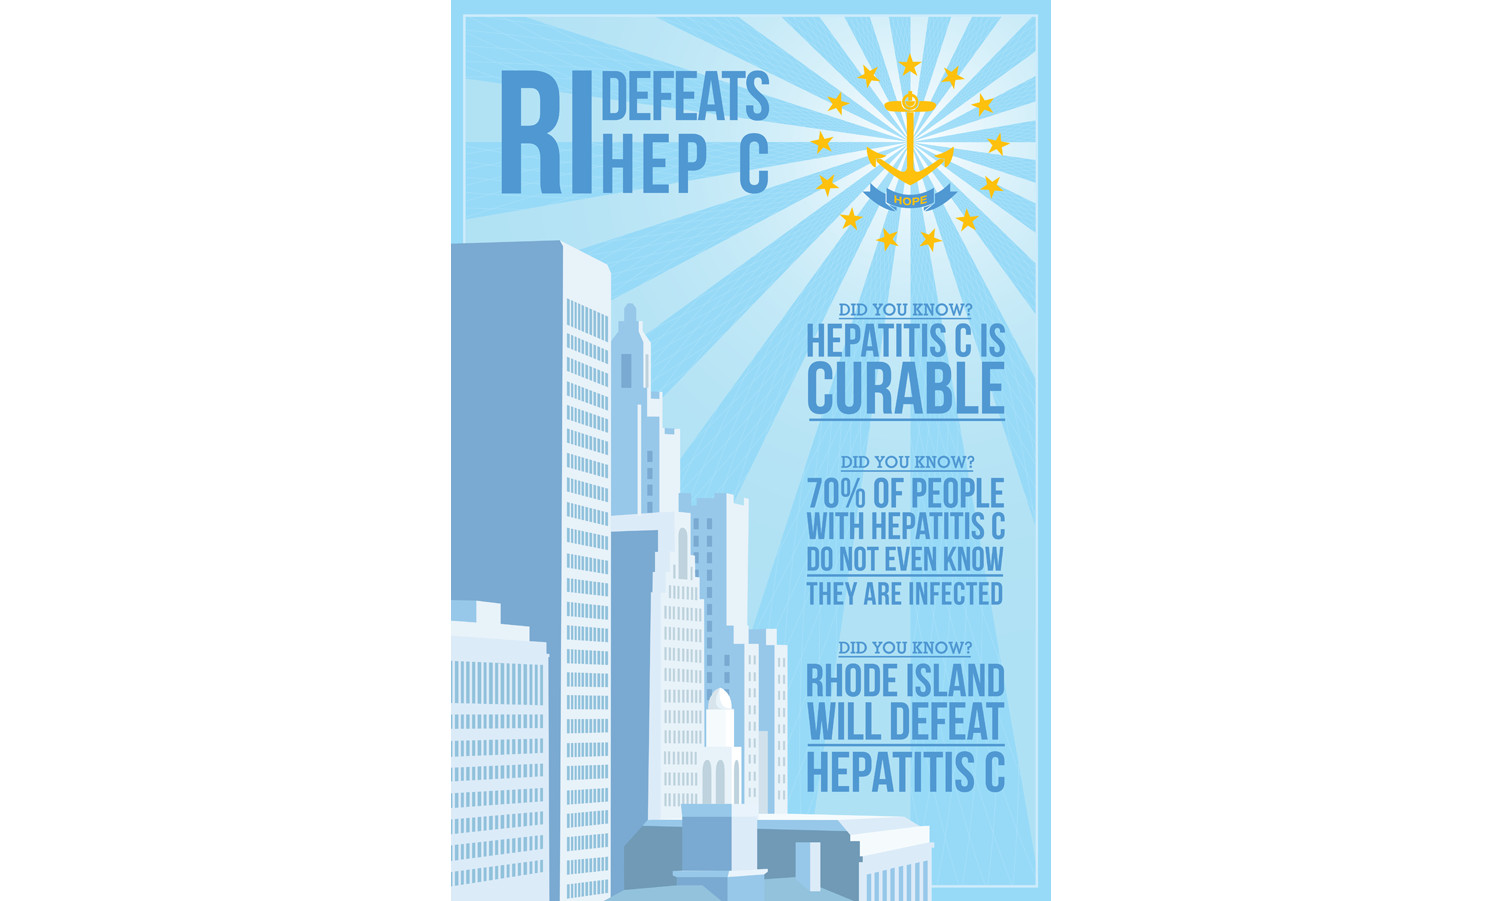 Poster design competition won by Hayward H. Gatch IV, promoting the RI Defeats Hep C initiative being led by Dr. Lynn Taylor